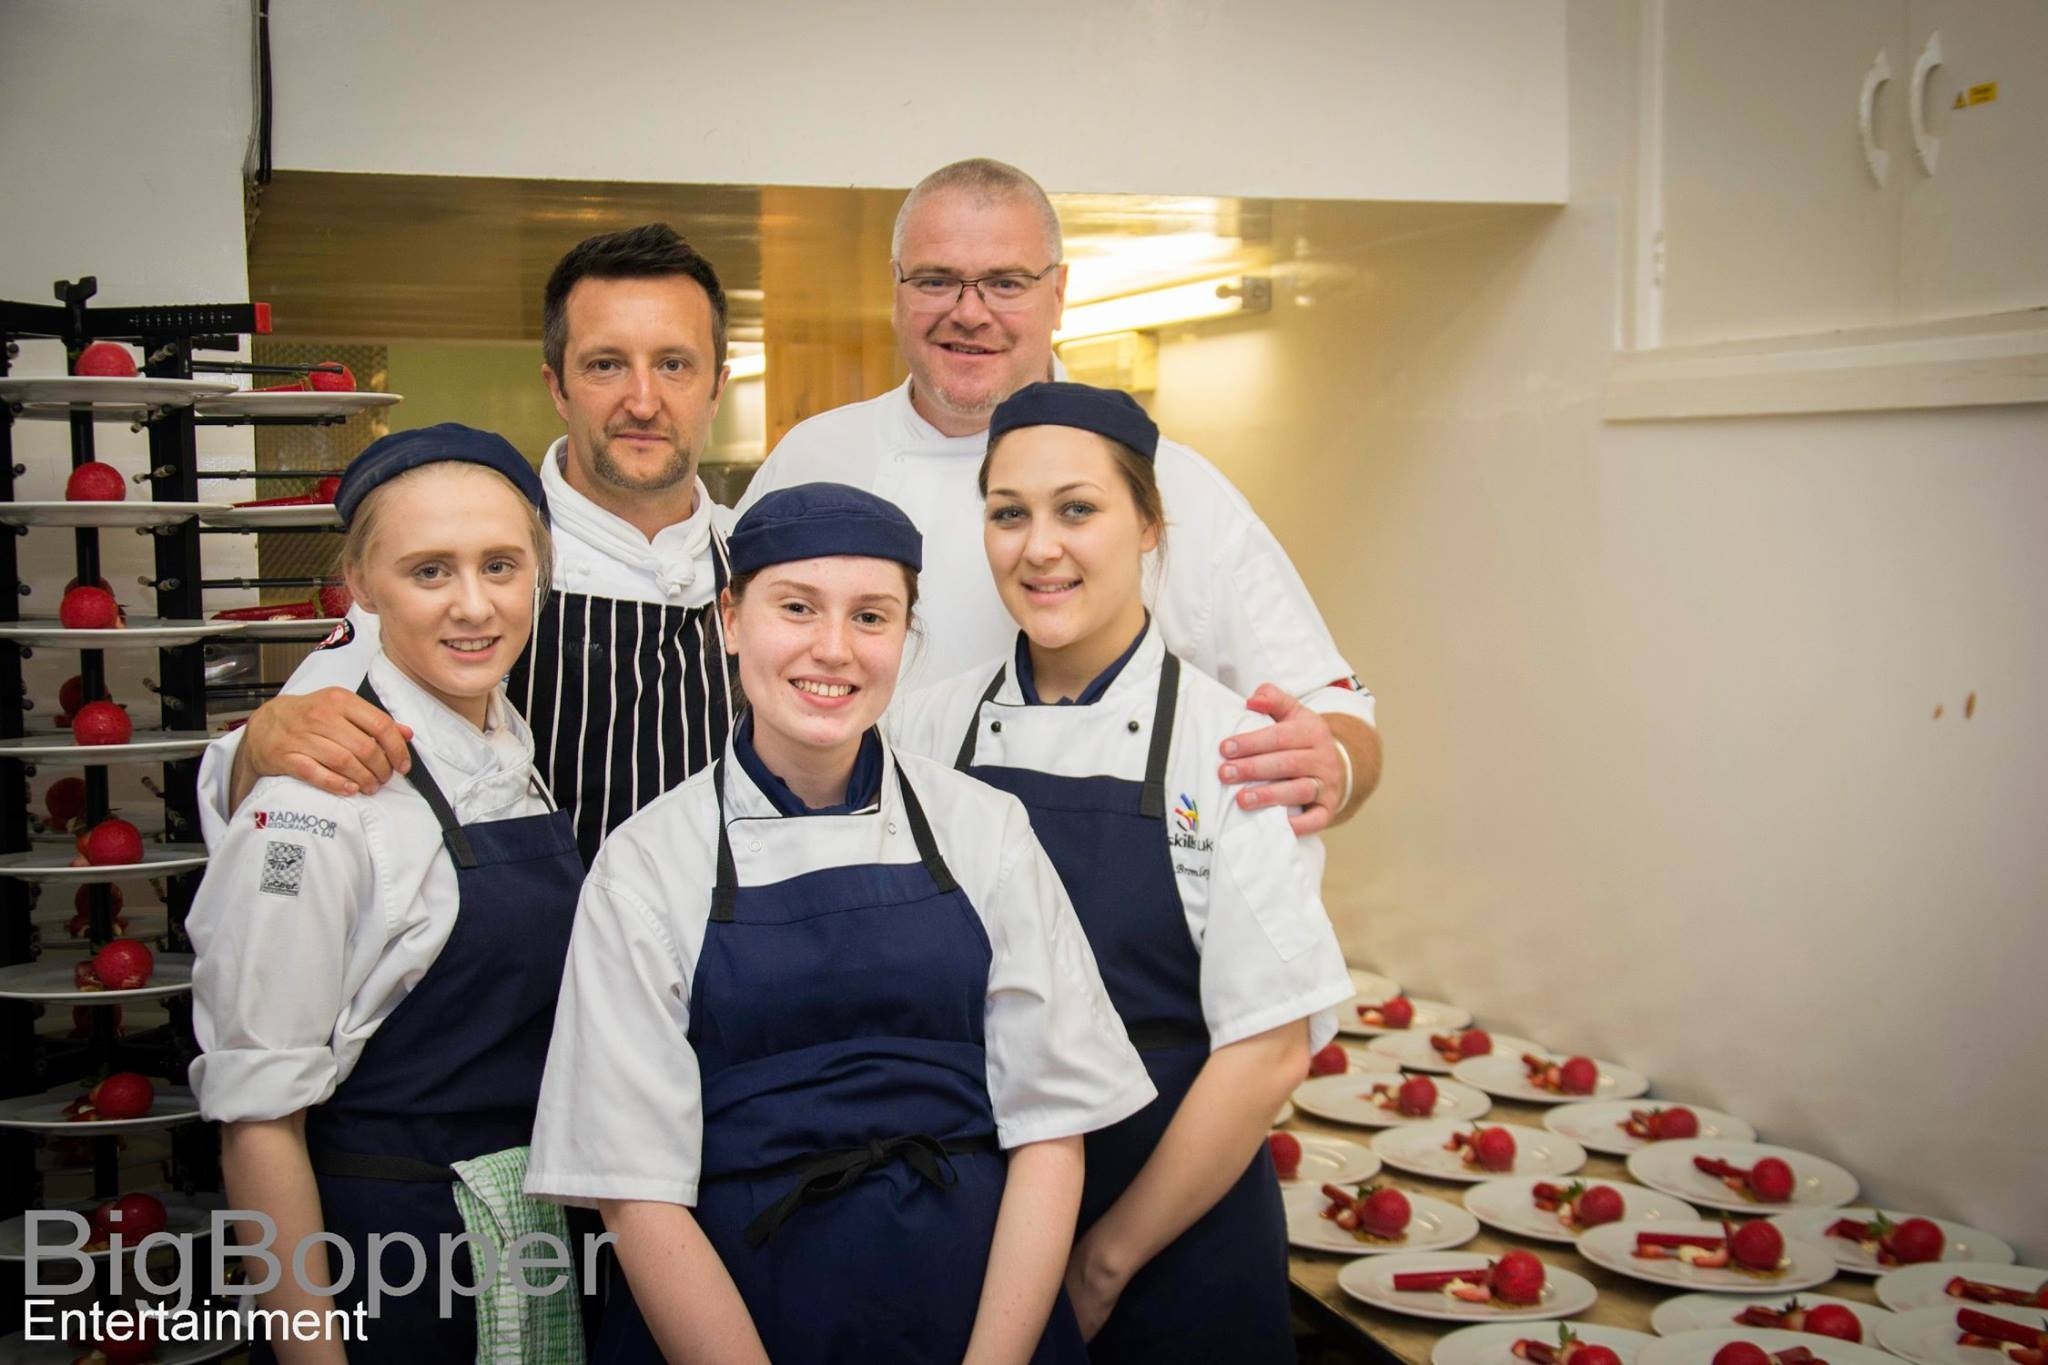 Loughborough College students join celebrated chefs for major charity event